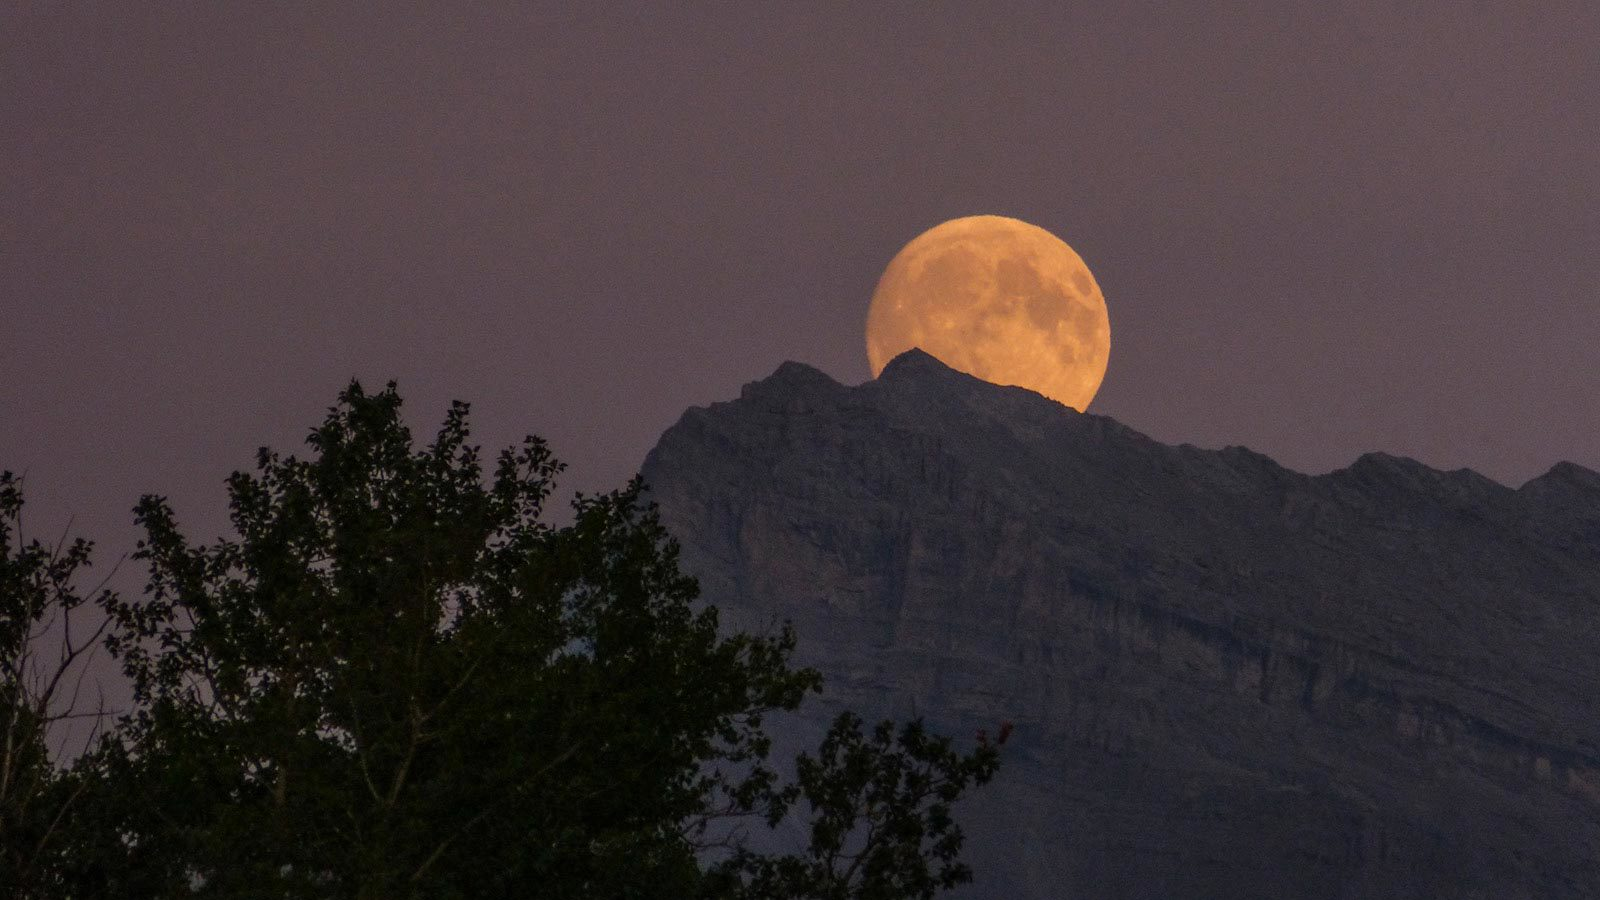 View of large moon behind large mountain.